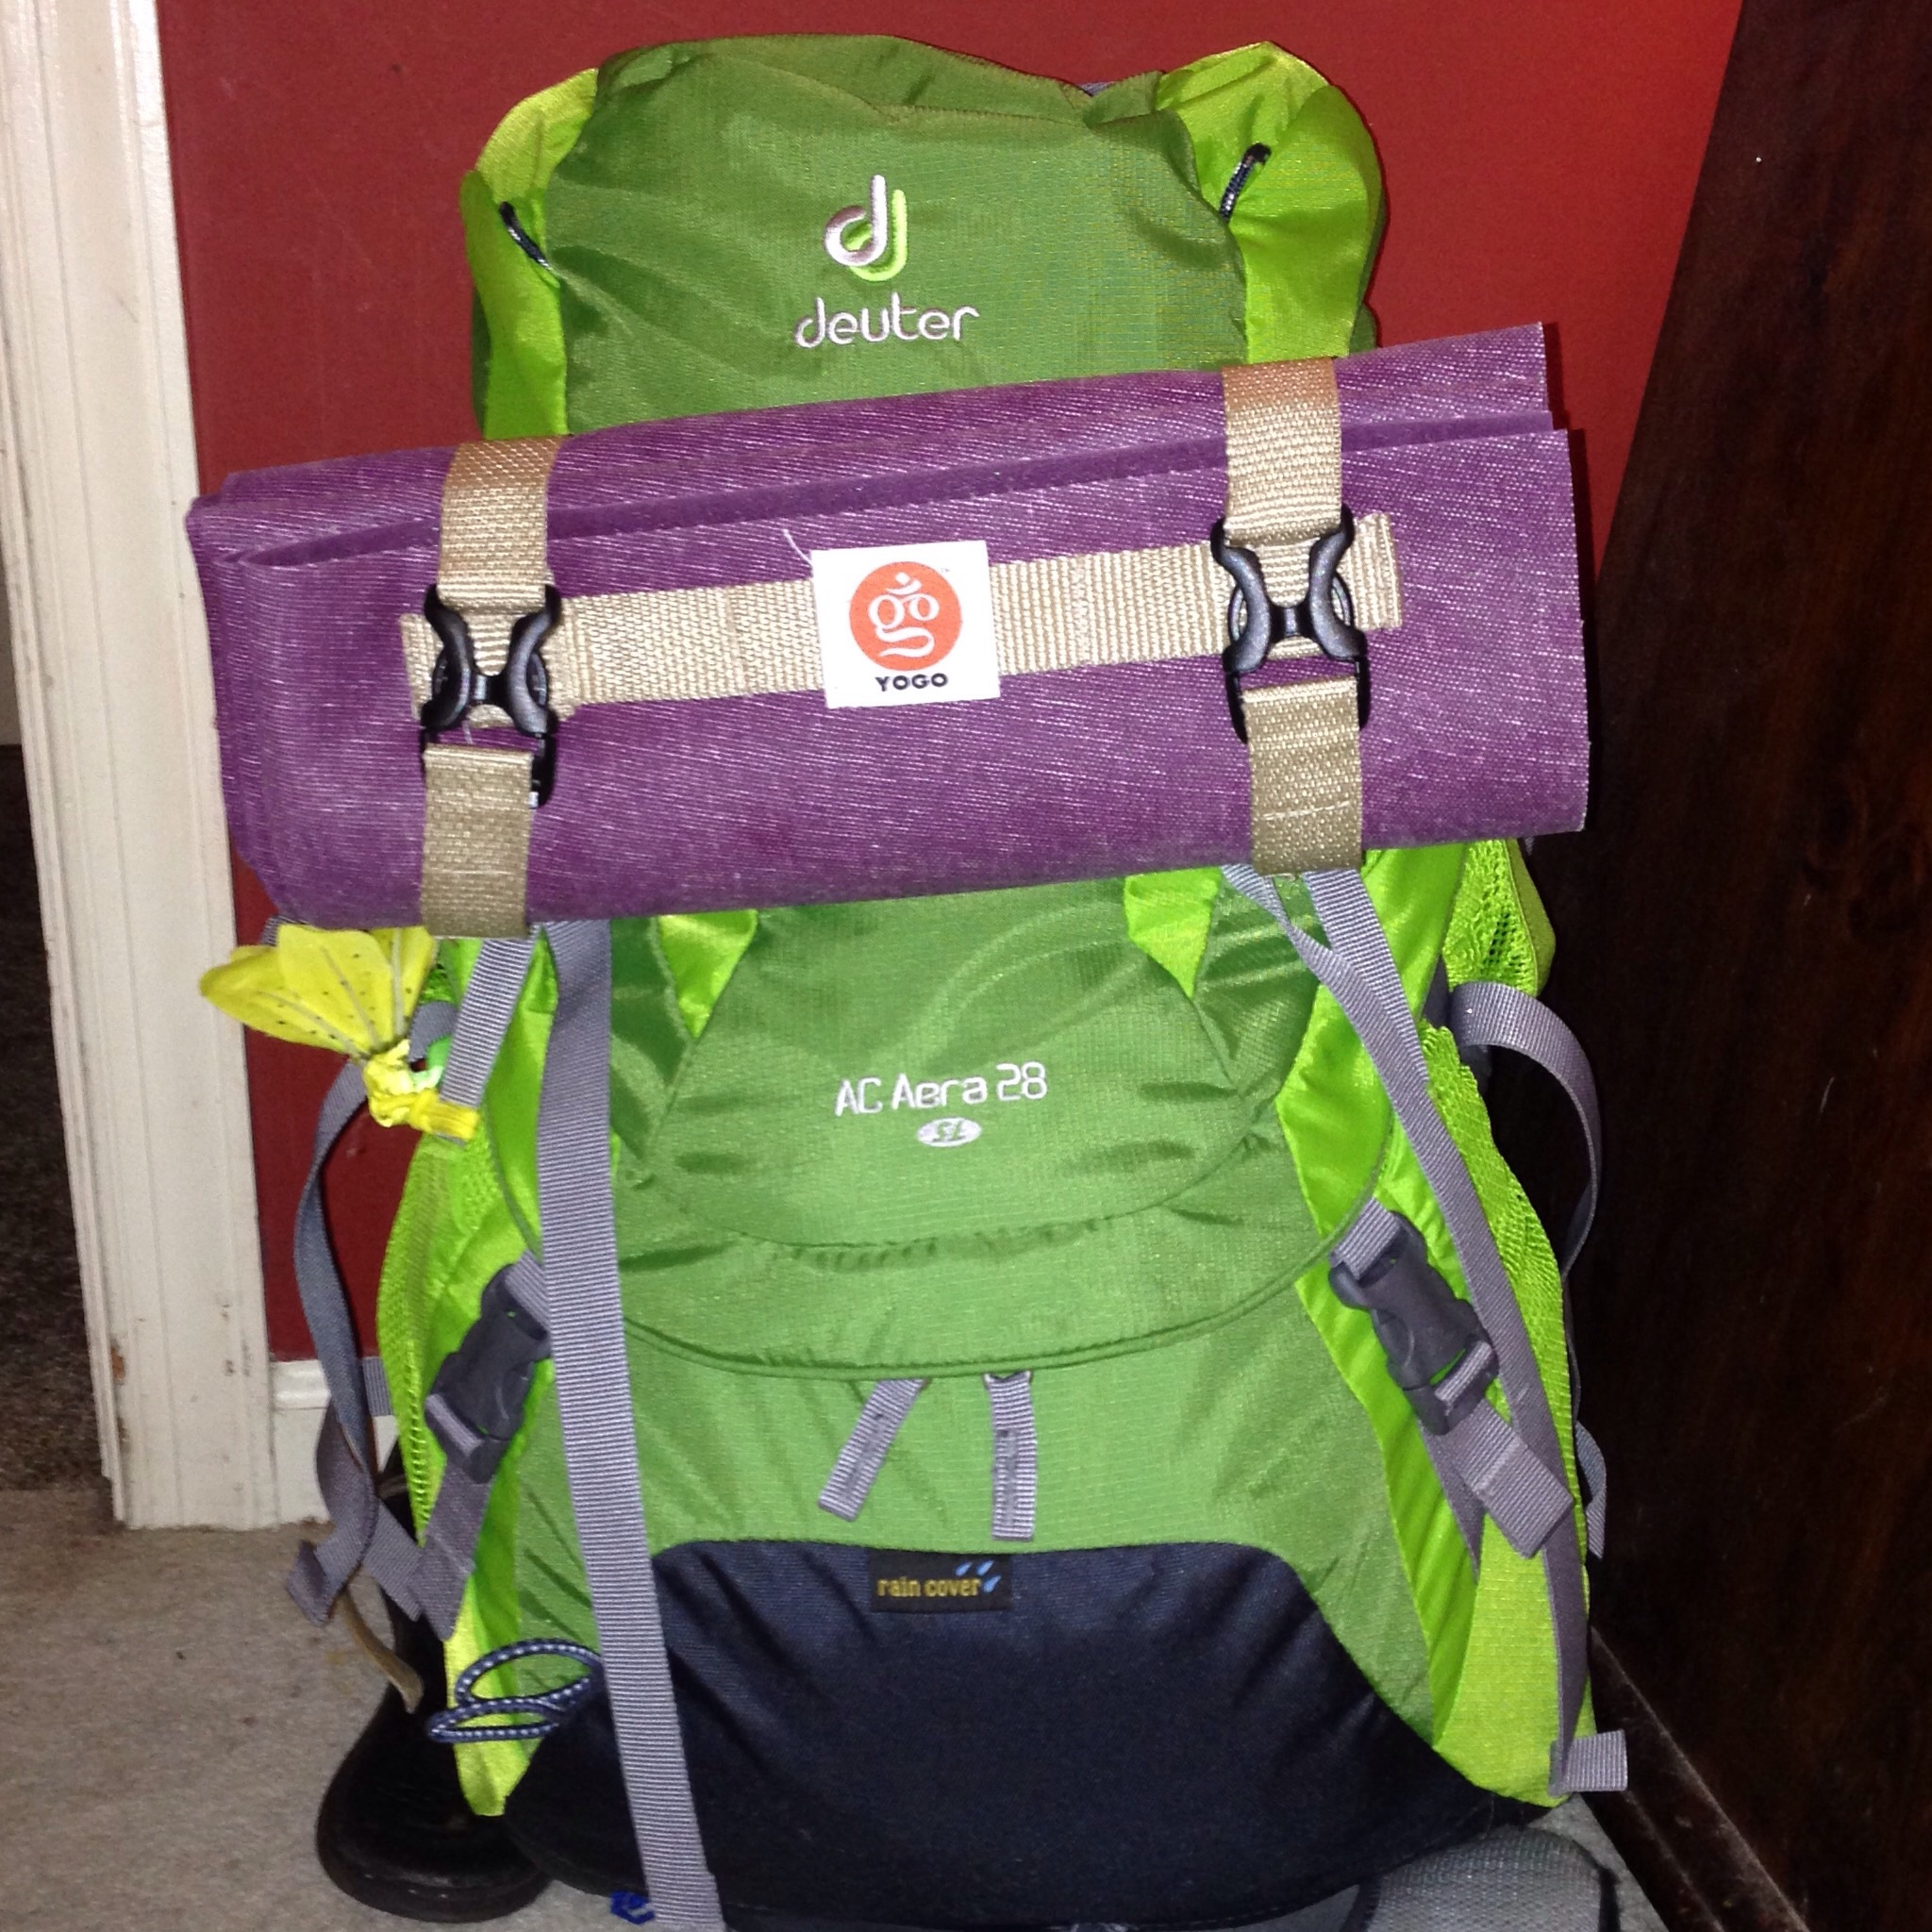 Fully packed with my Yogo travel mat.